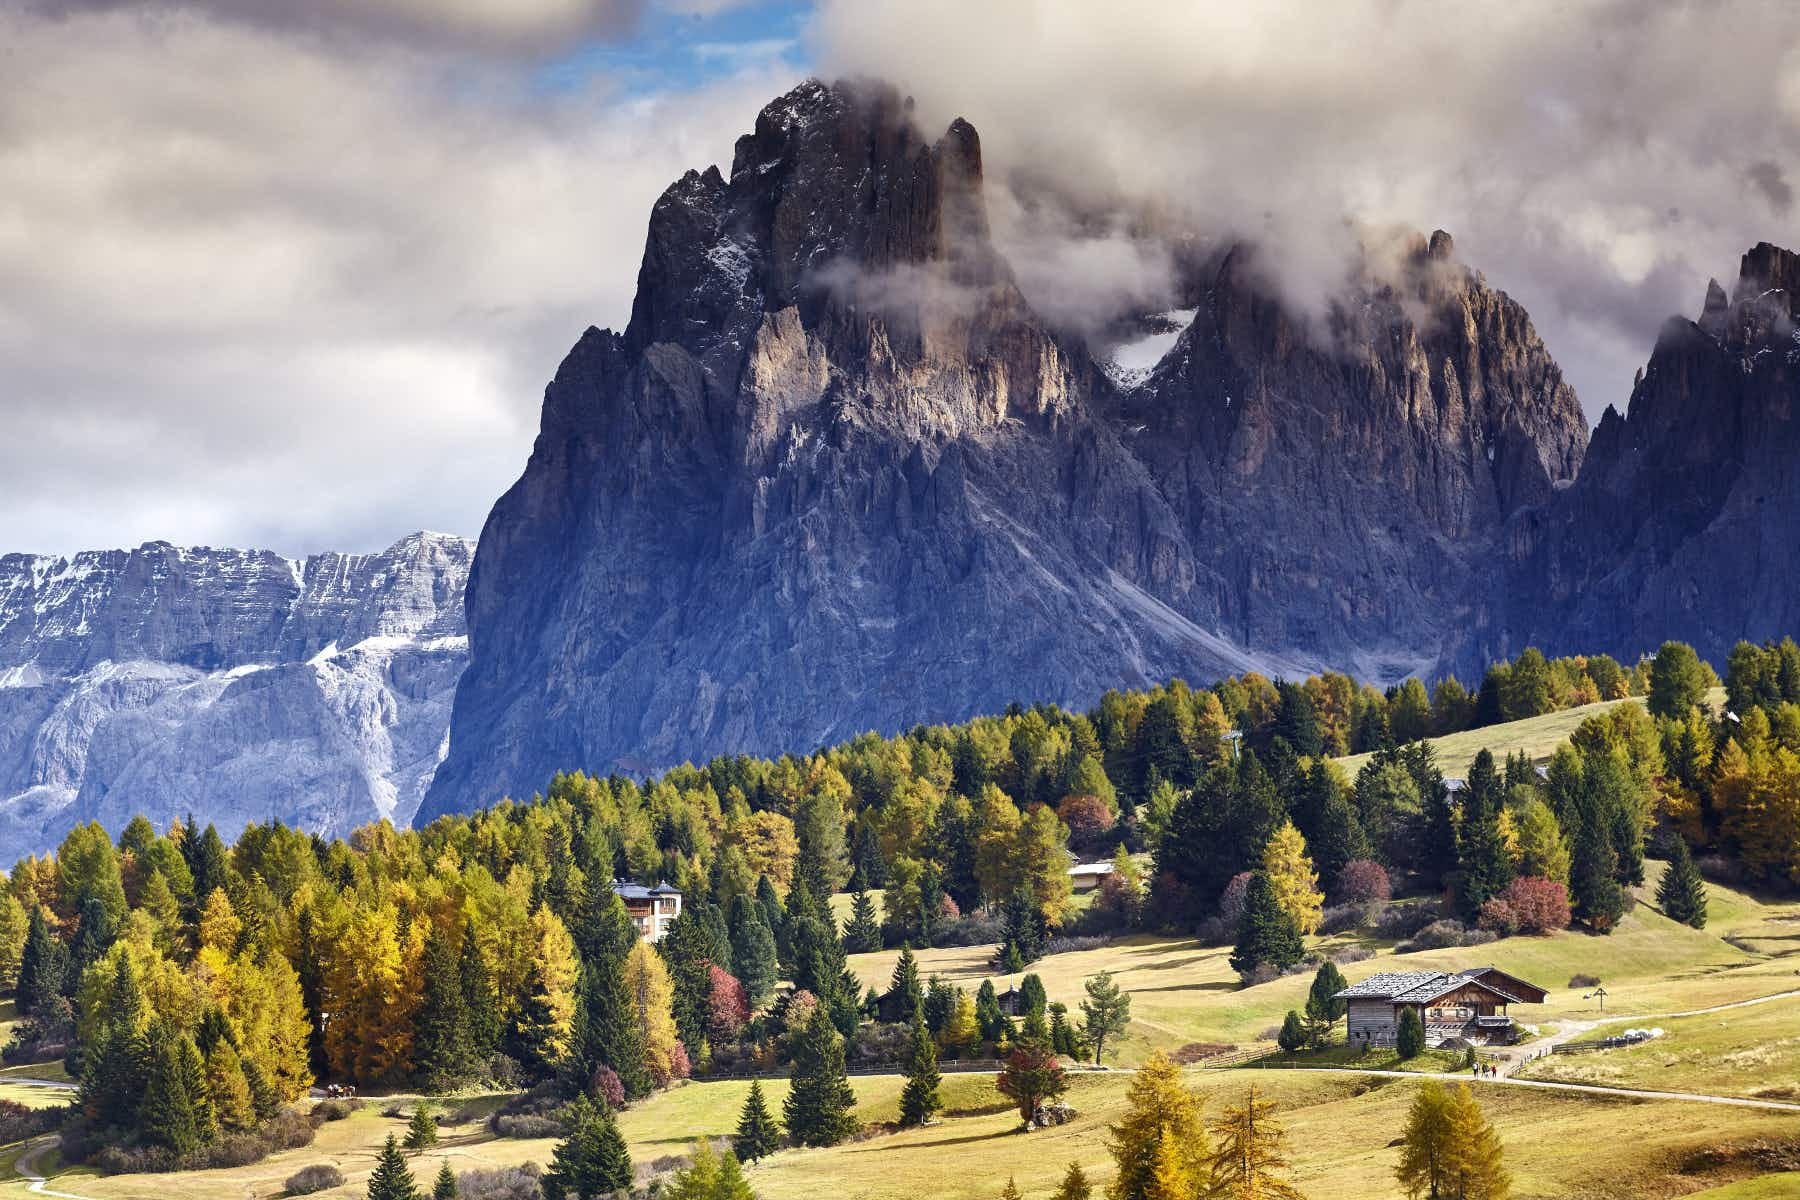 The Dolomites' Sella Pass restricts car access to safeguard environment